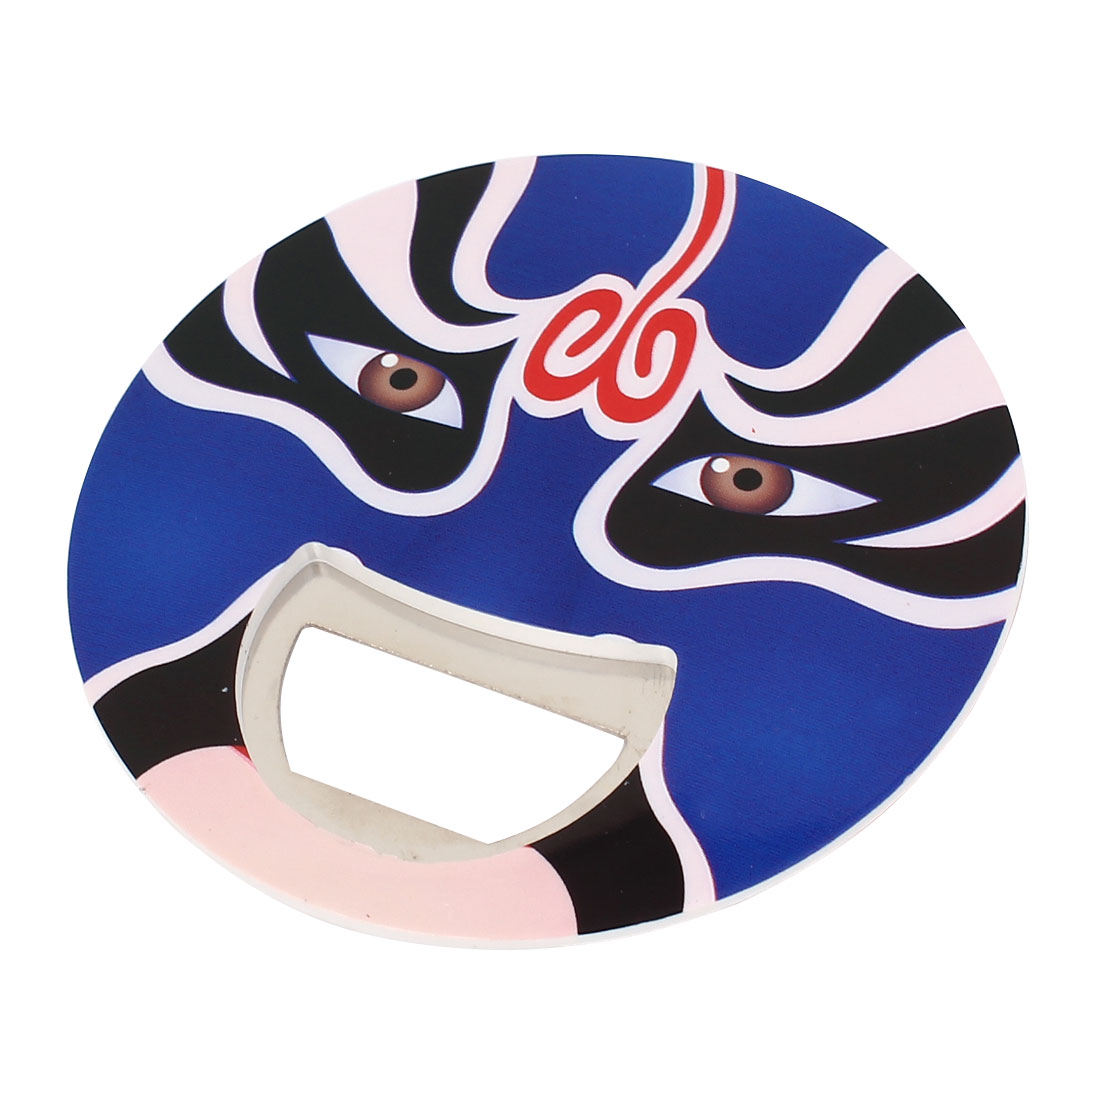 Two Faces Peking Opera Facial Masks Print Round Beer Milk Bottle Opener